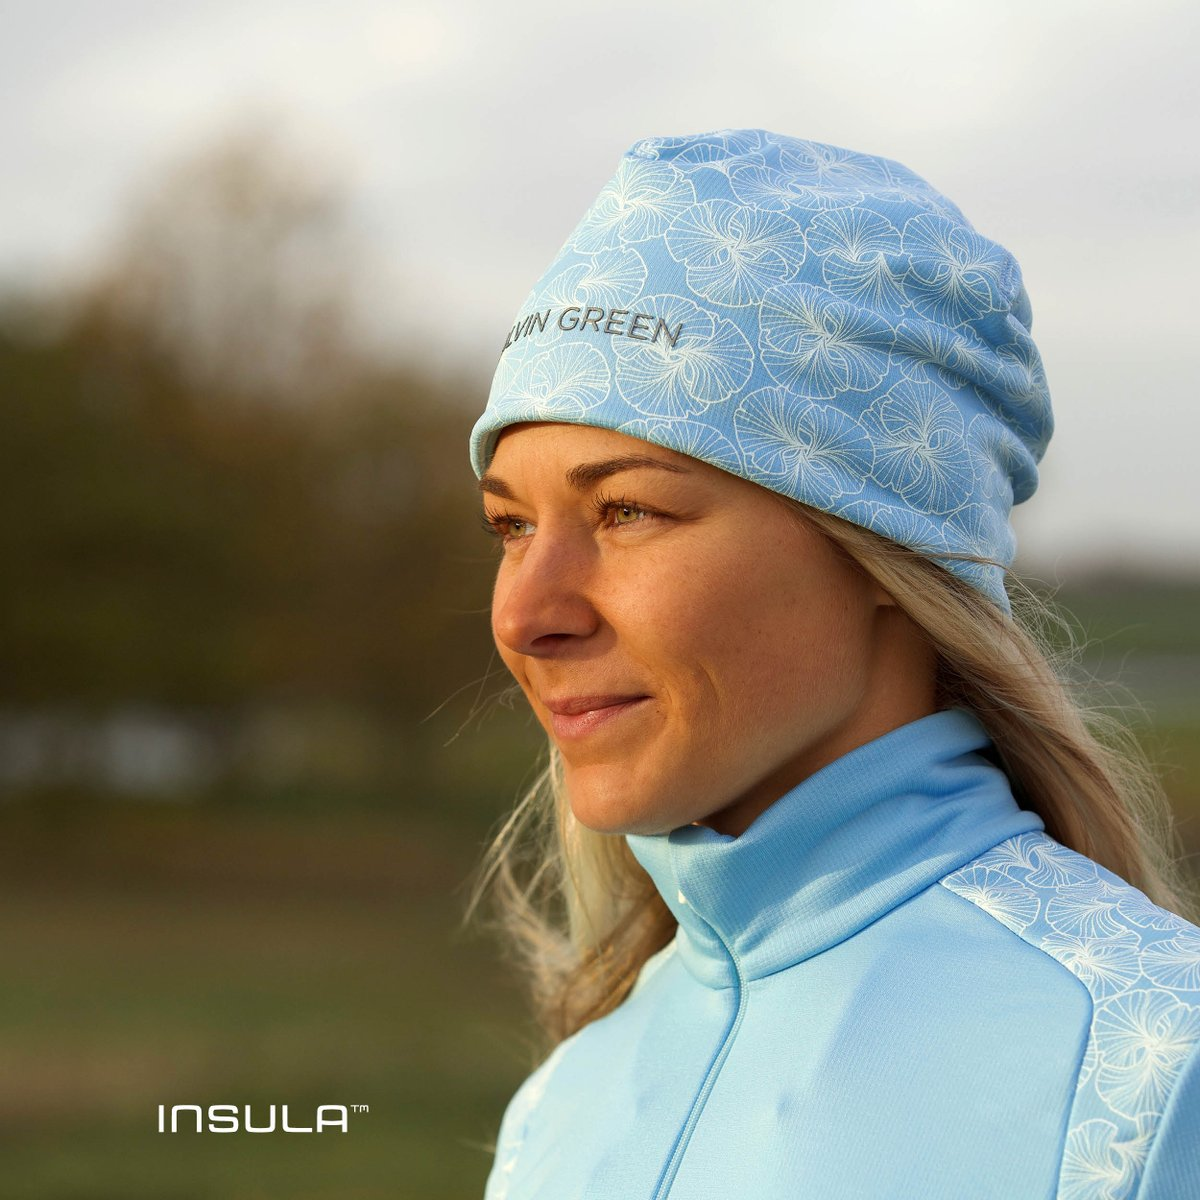 Are you ready for October? Check out our DANI and DOROTHY INSULA™ gear for exceptional warmth when playing golf in colder conditions.